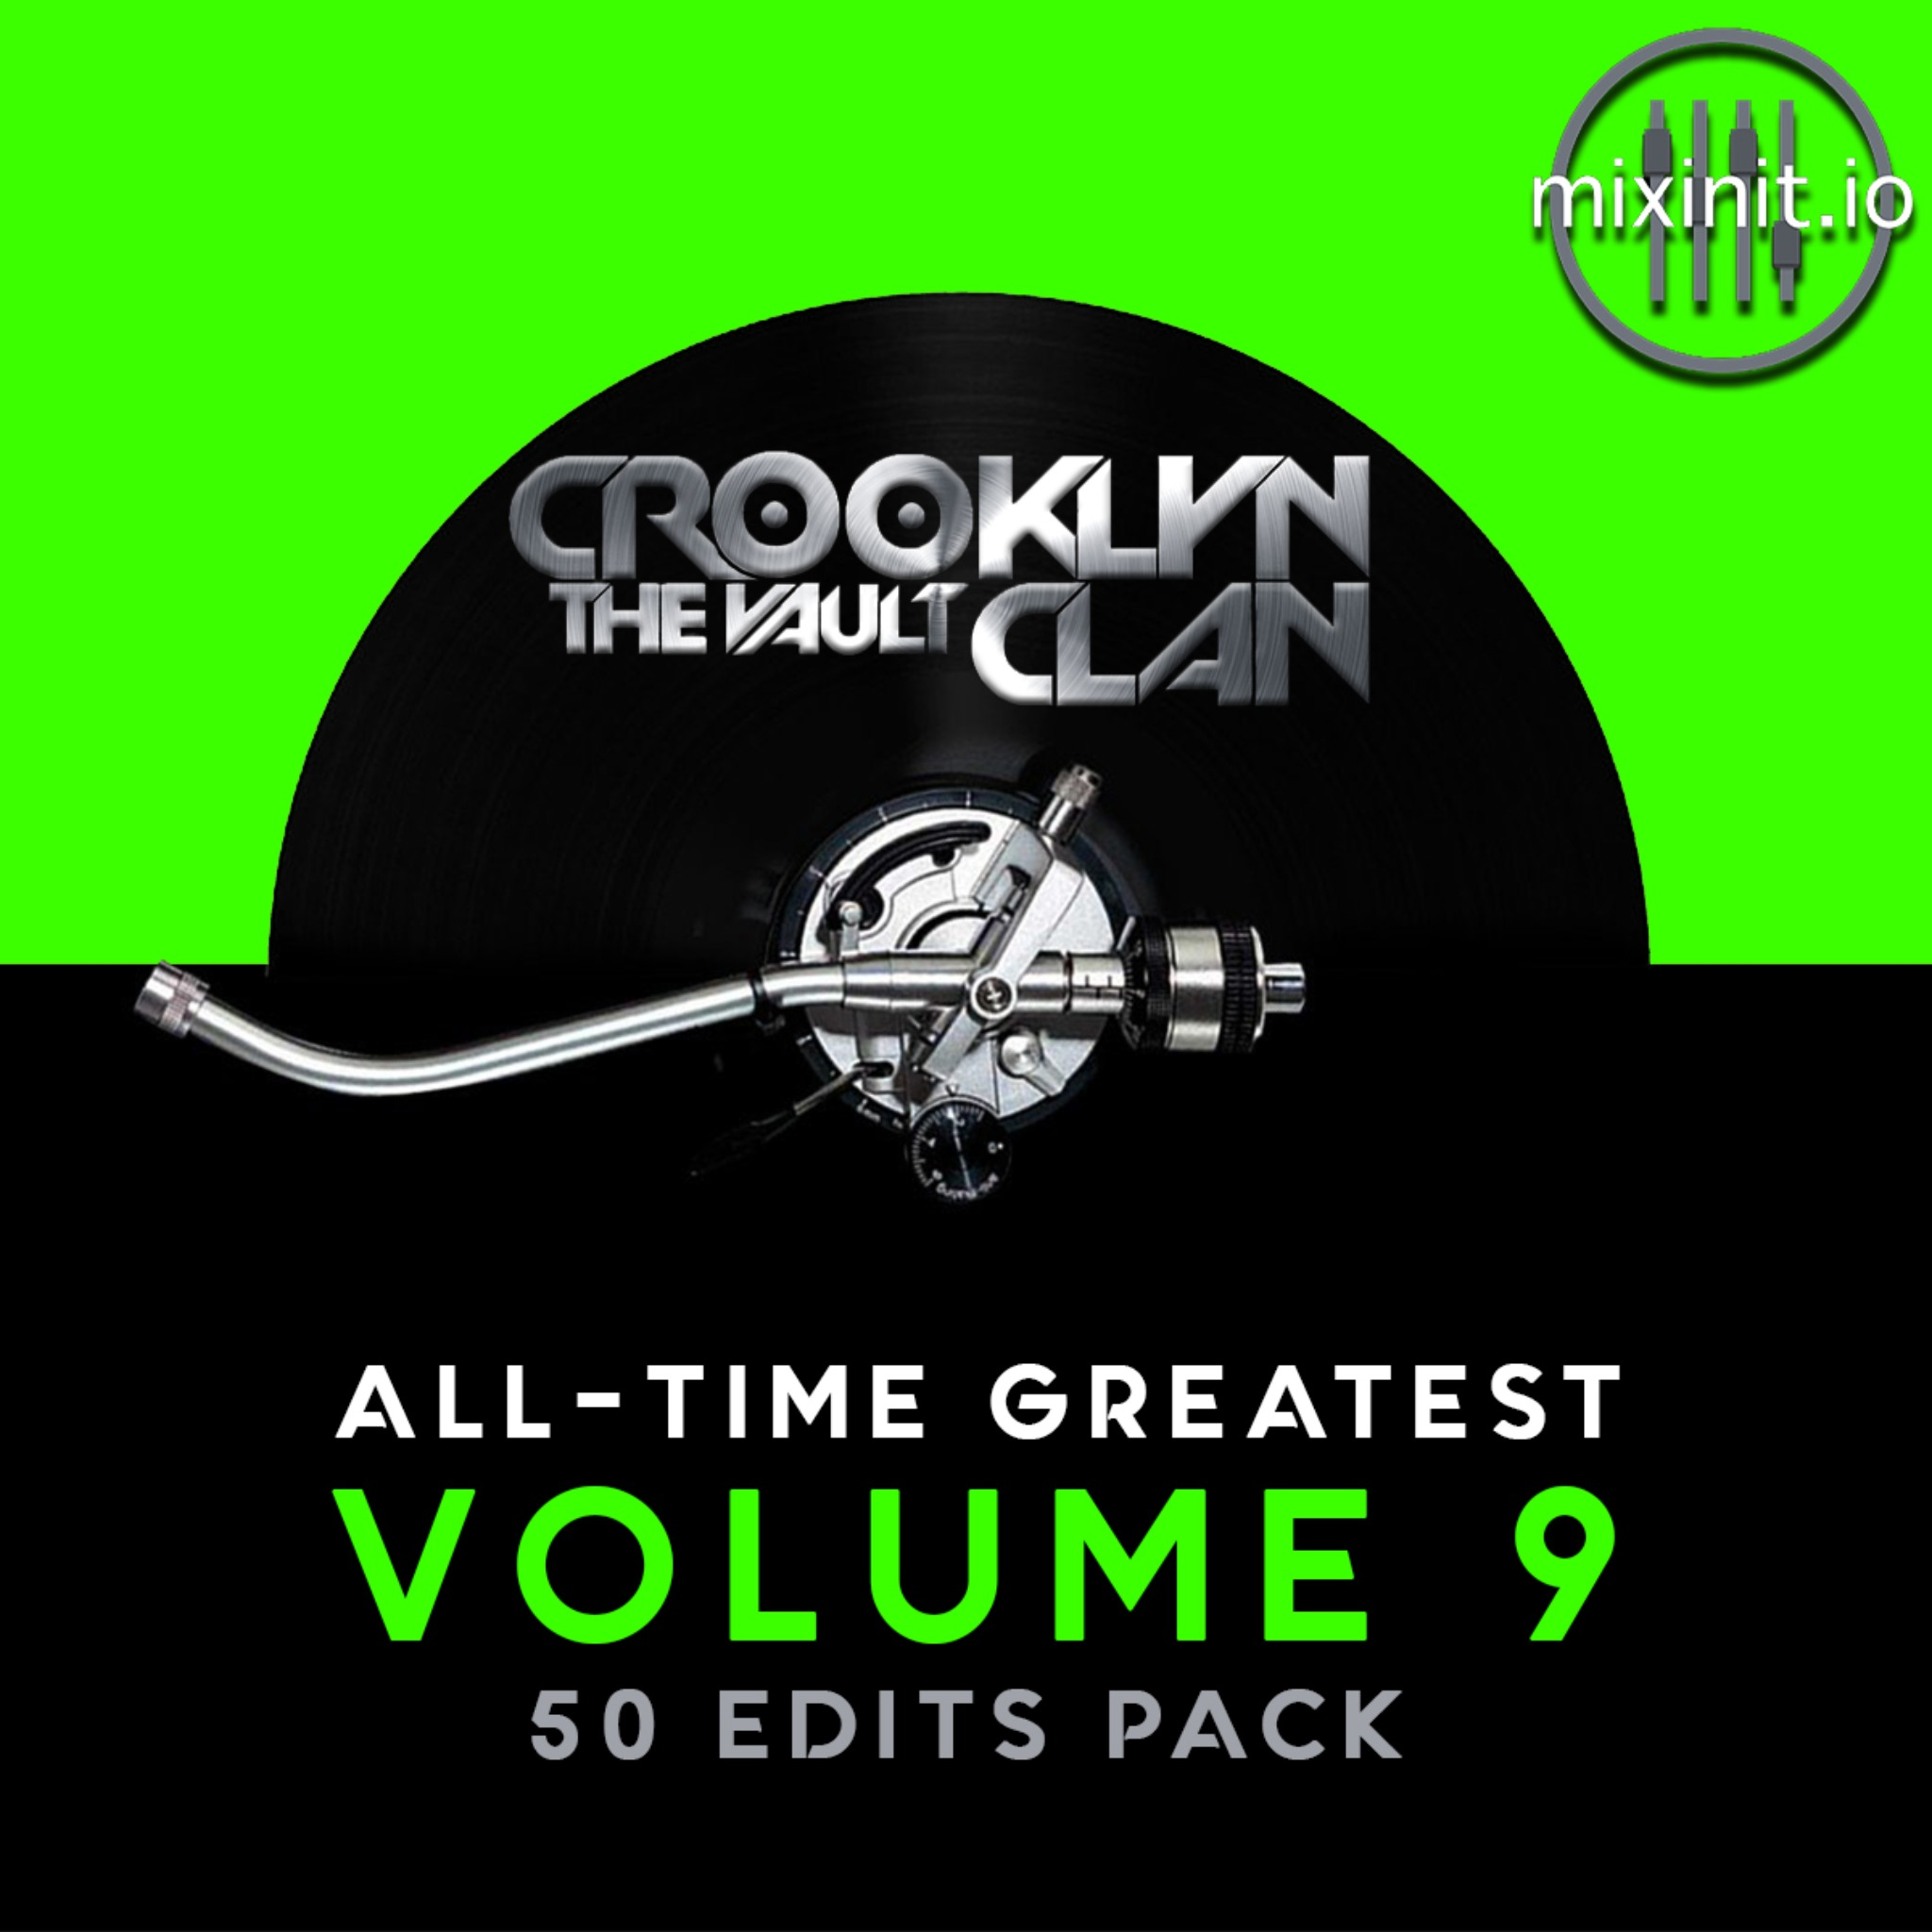 Best Of The Crooklyn Clan Vault Vol. 9 (Various Editors)